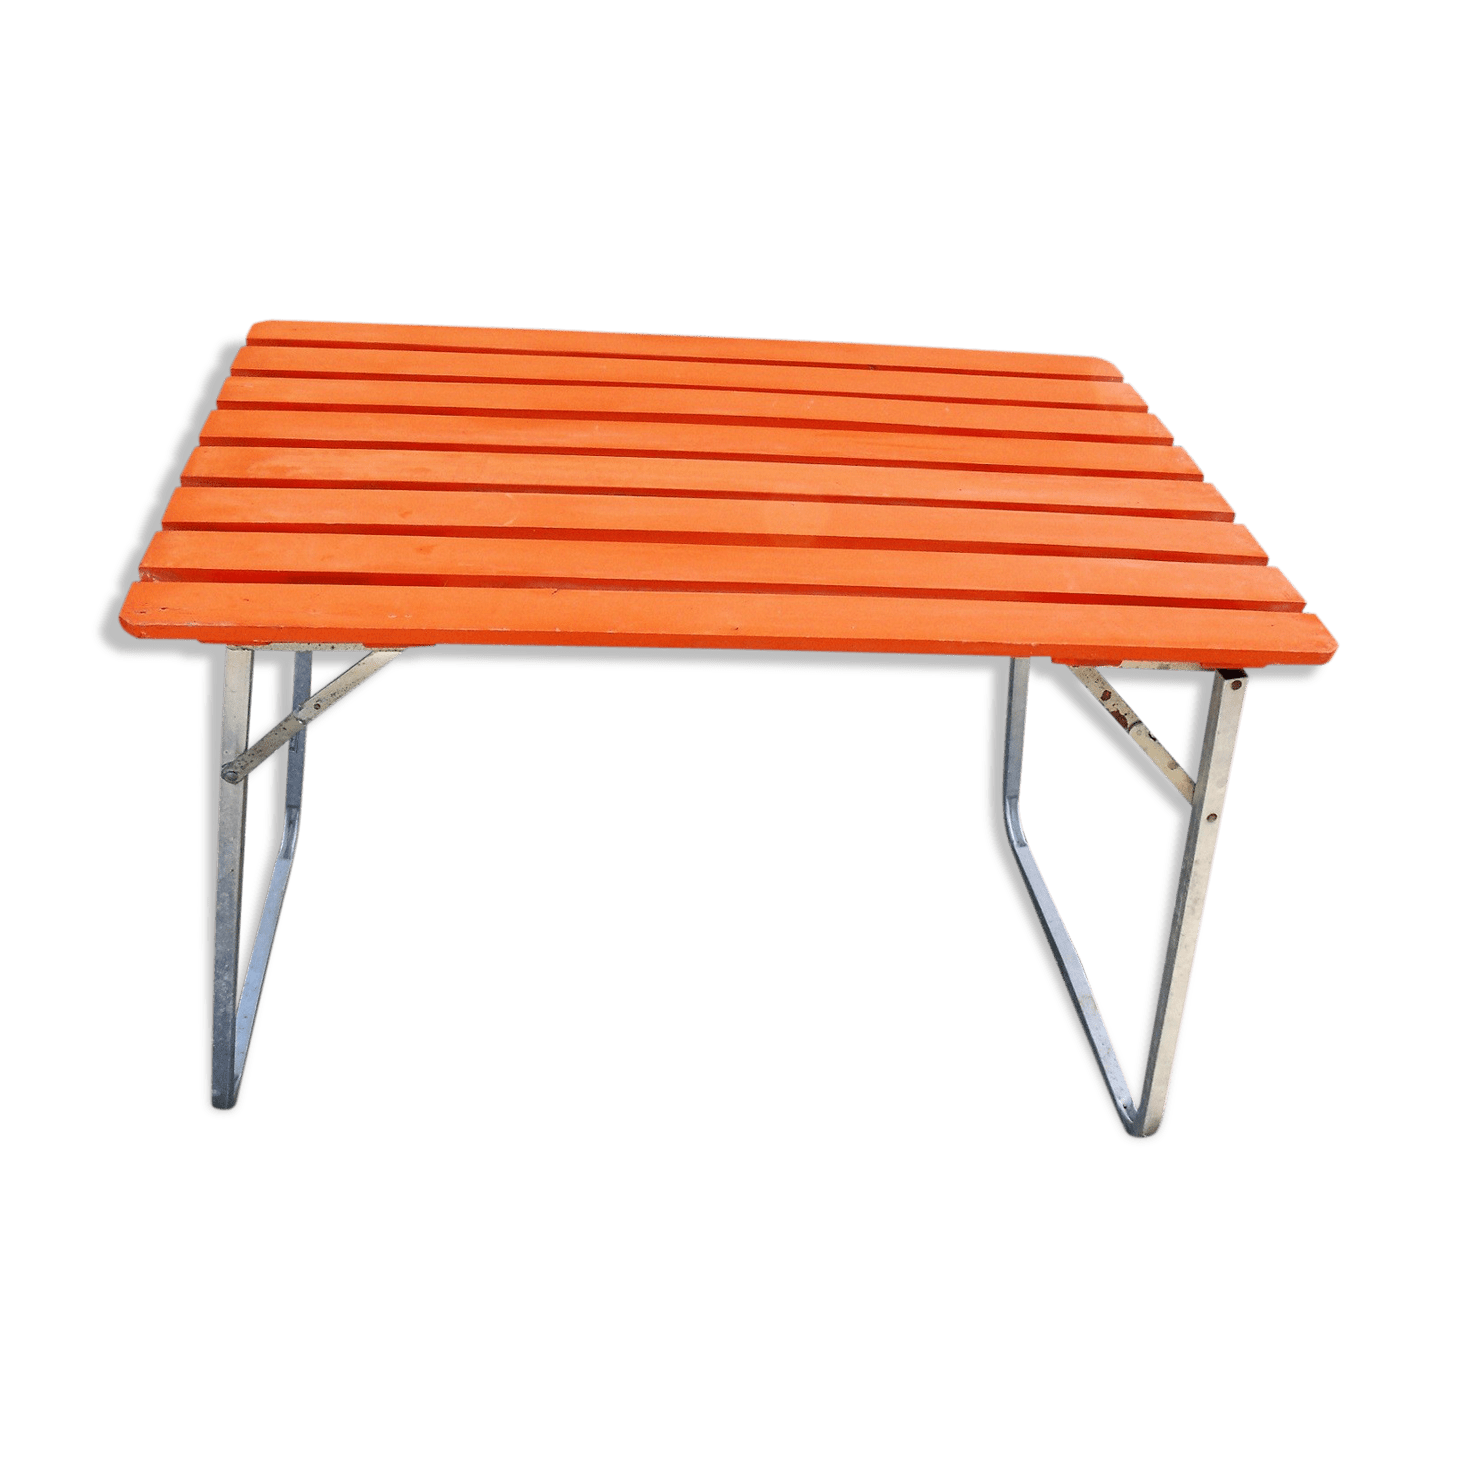 Table Exterieur Bois Et Metal Table Exterieur Metal Excellent Salon With Table